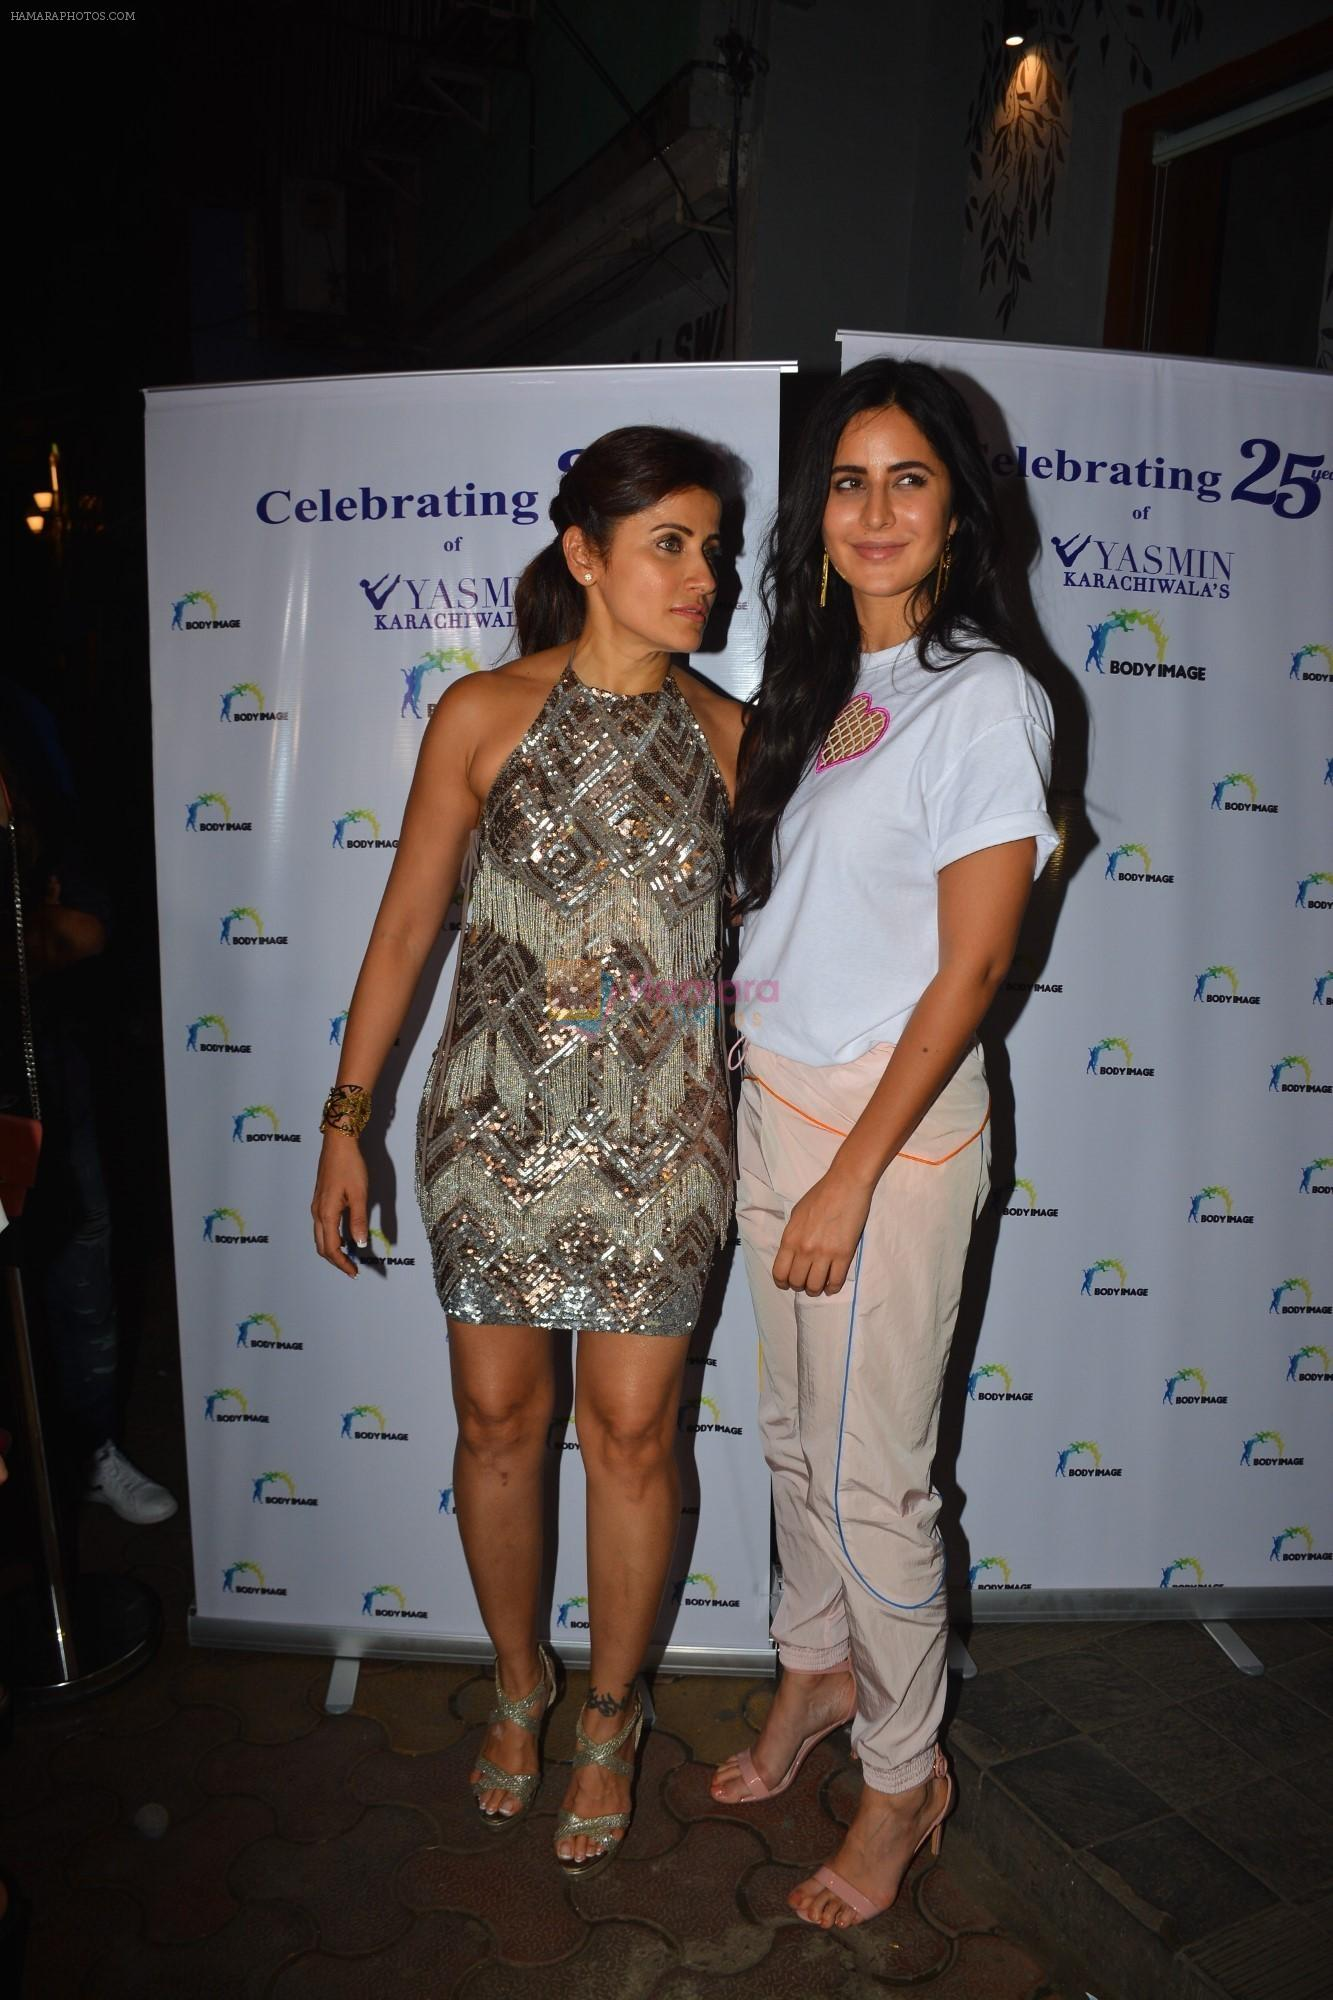 Katrina Kaif at the celebration of Yasmin Karachiwala's 25years in Fitness Training At Bandra on 23rd Sept 2018